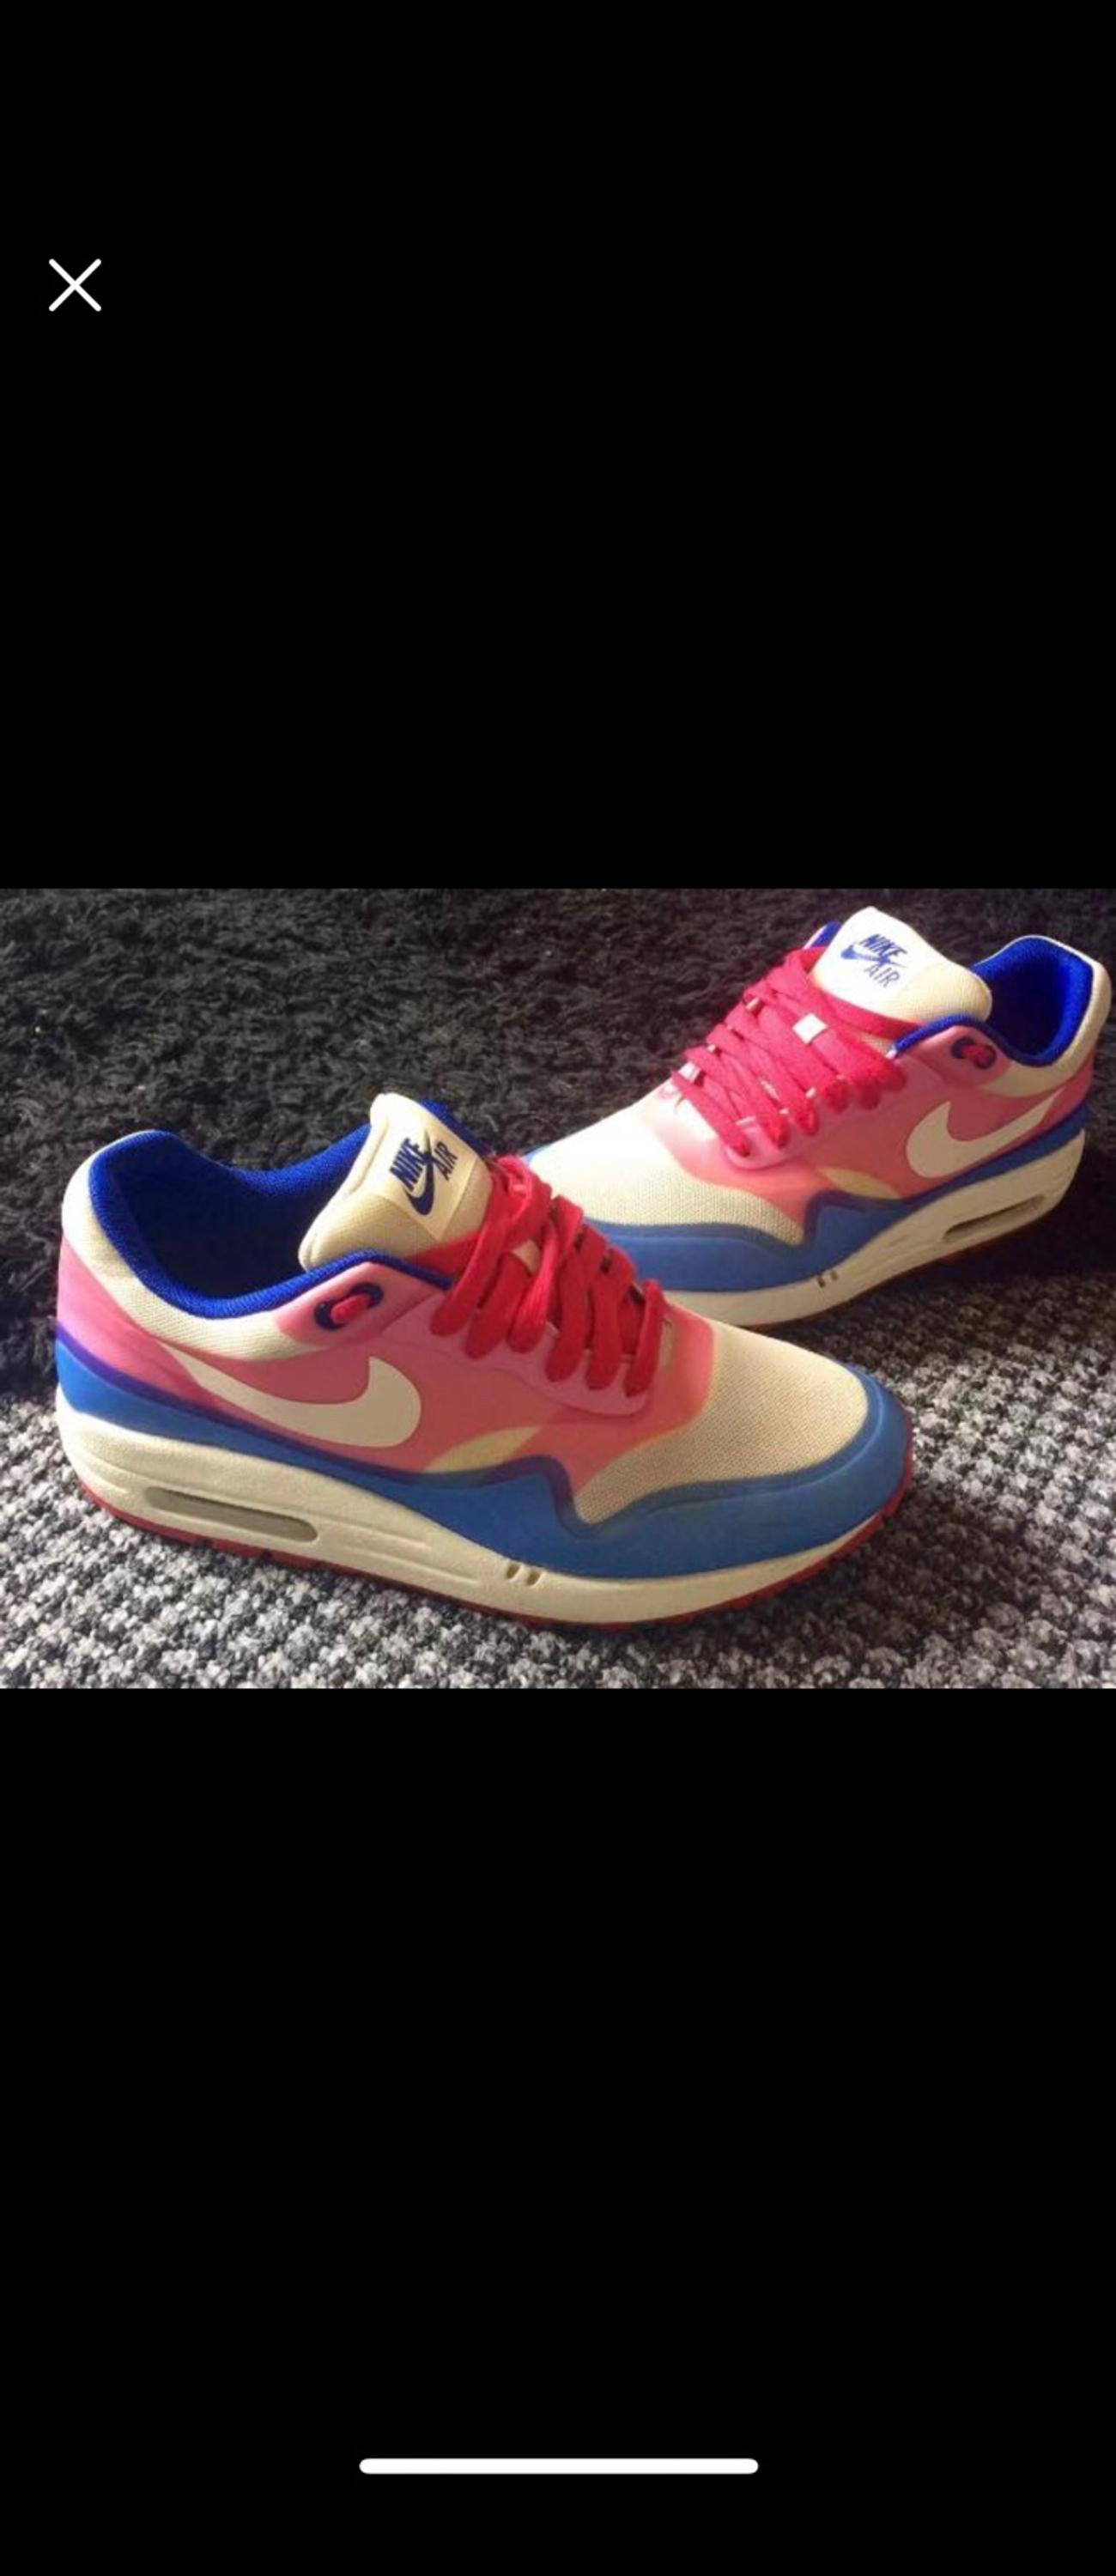 Nike air max 90 hyperfuse in B44 Birmingham for £30.00 for